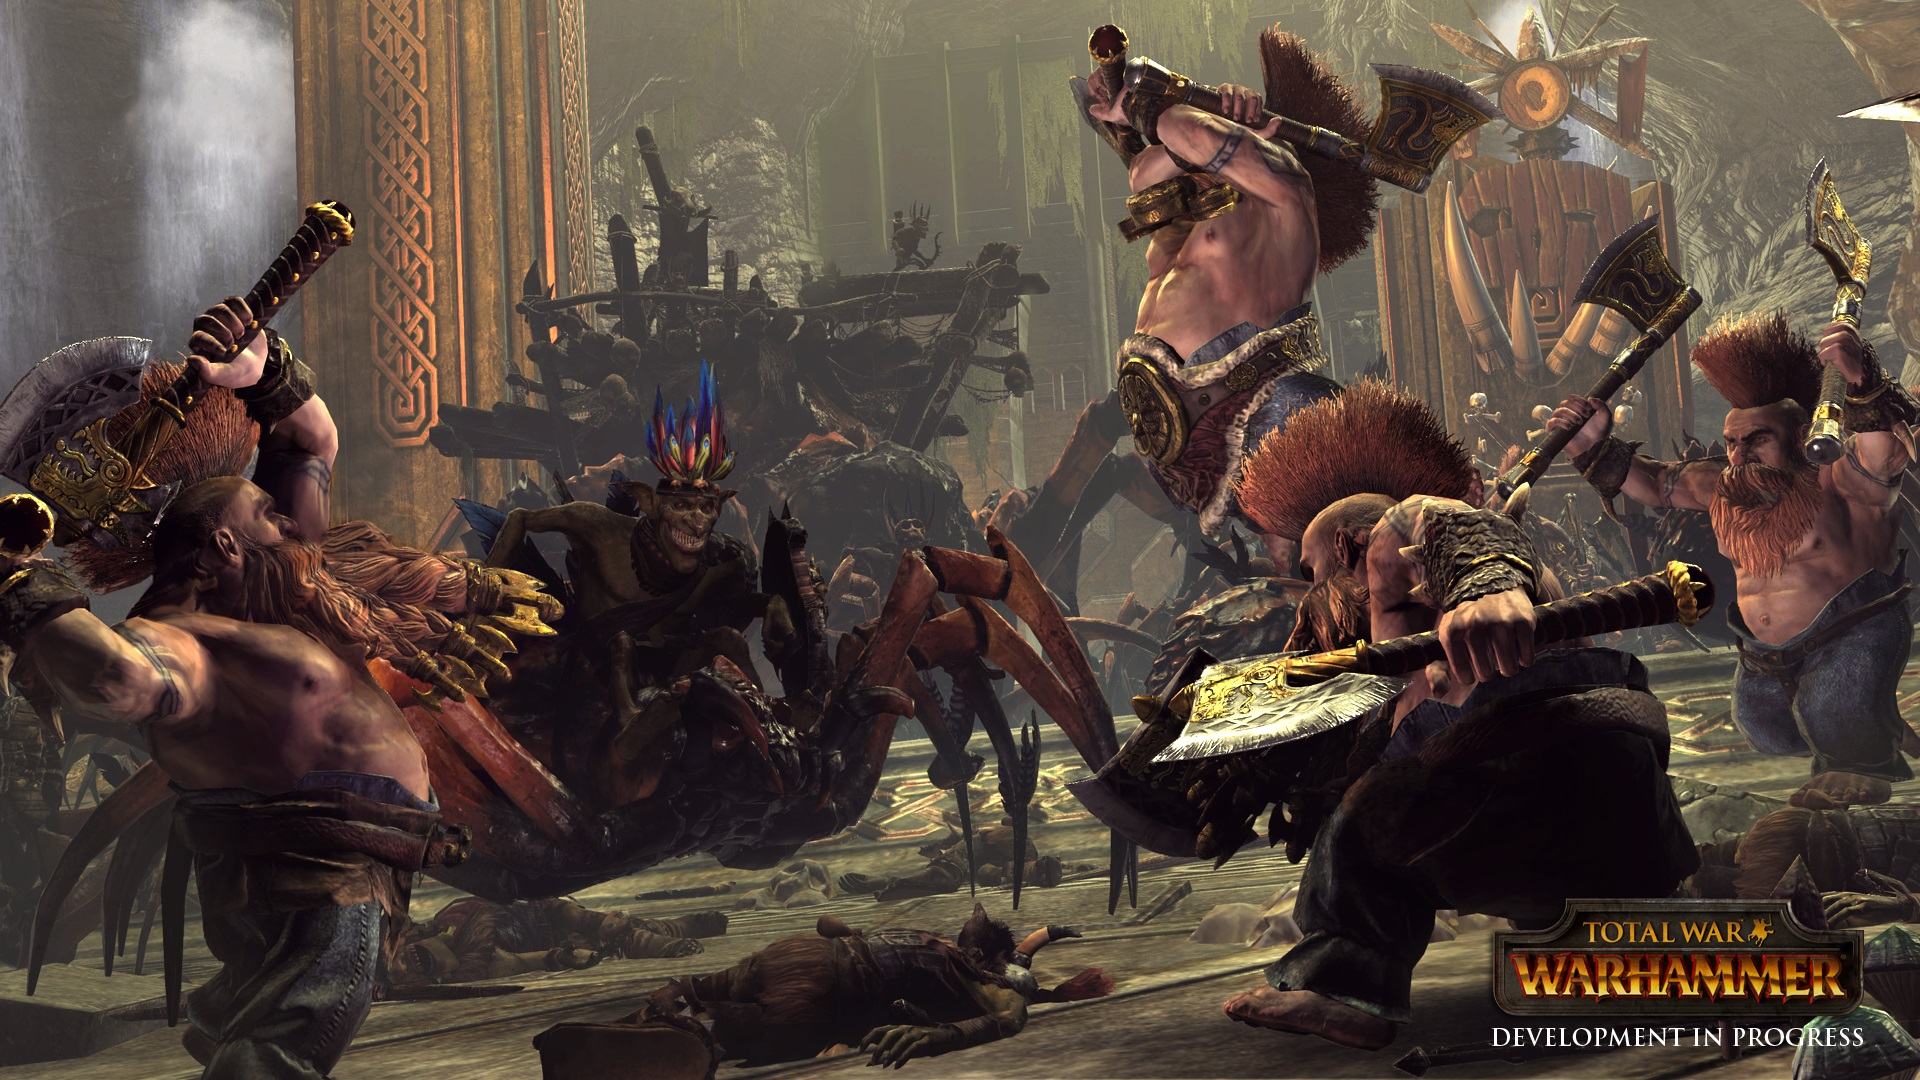 Total War: Warhammer Full hd wallpapers